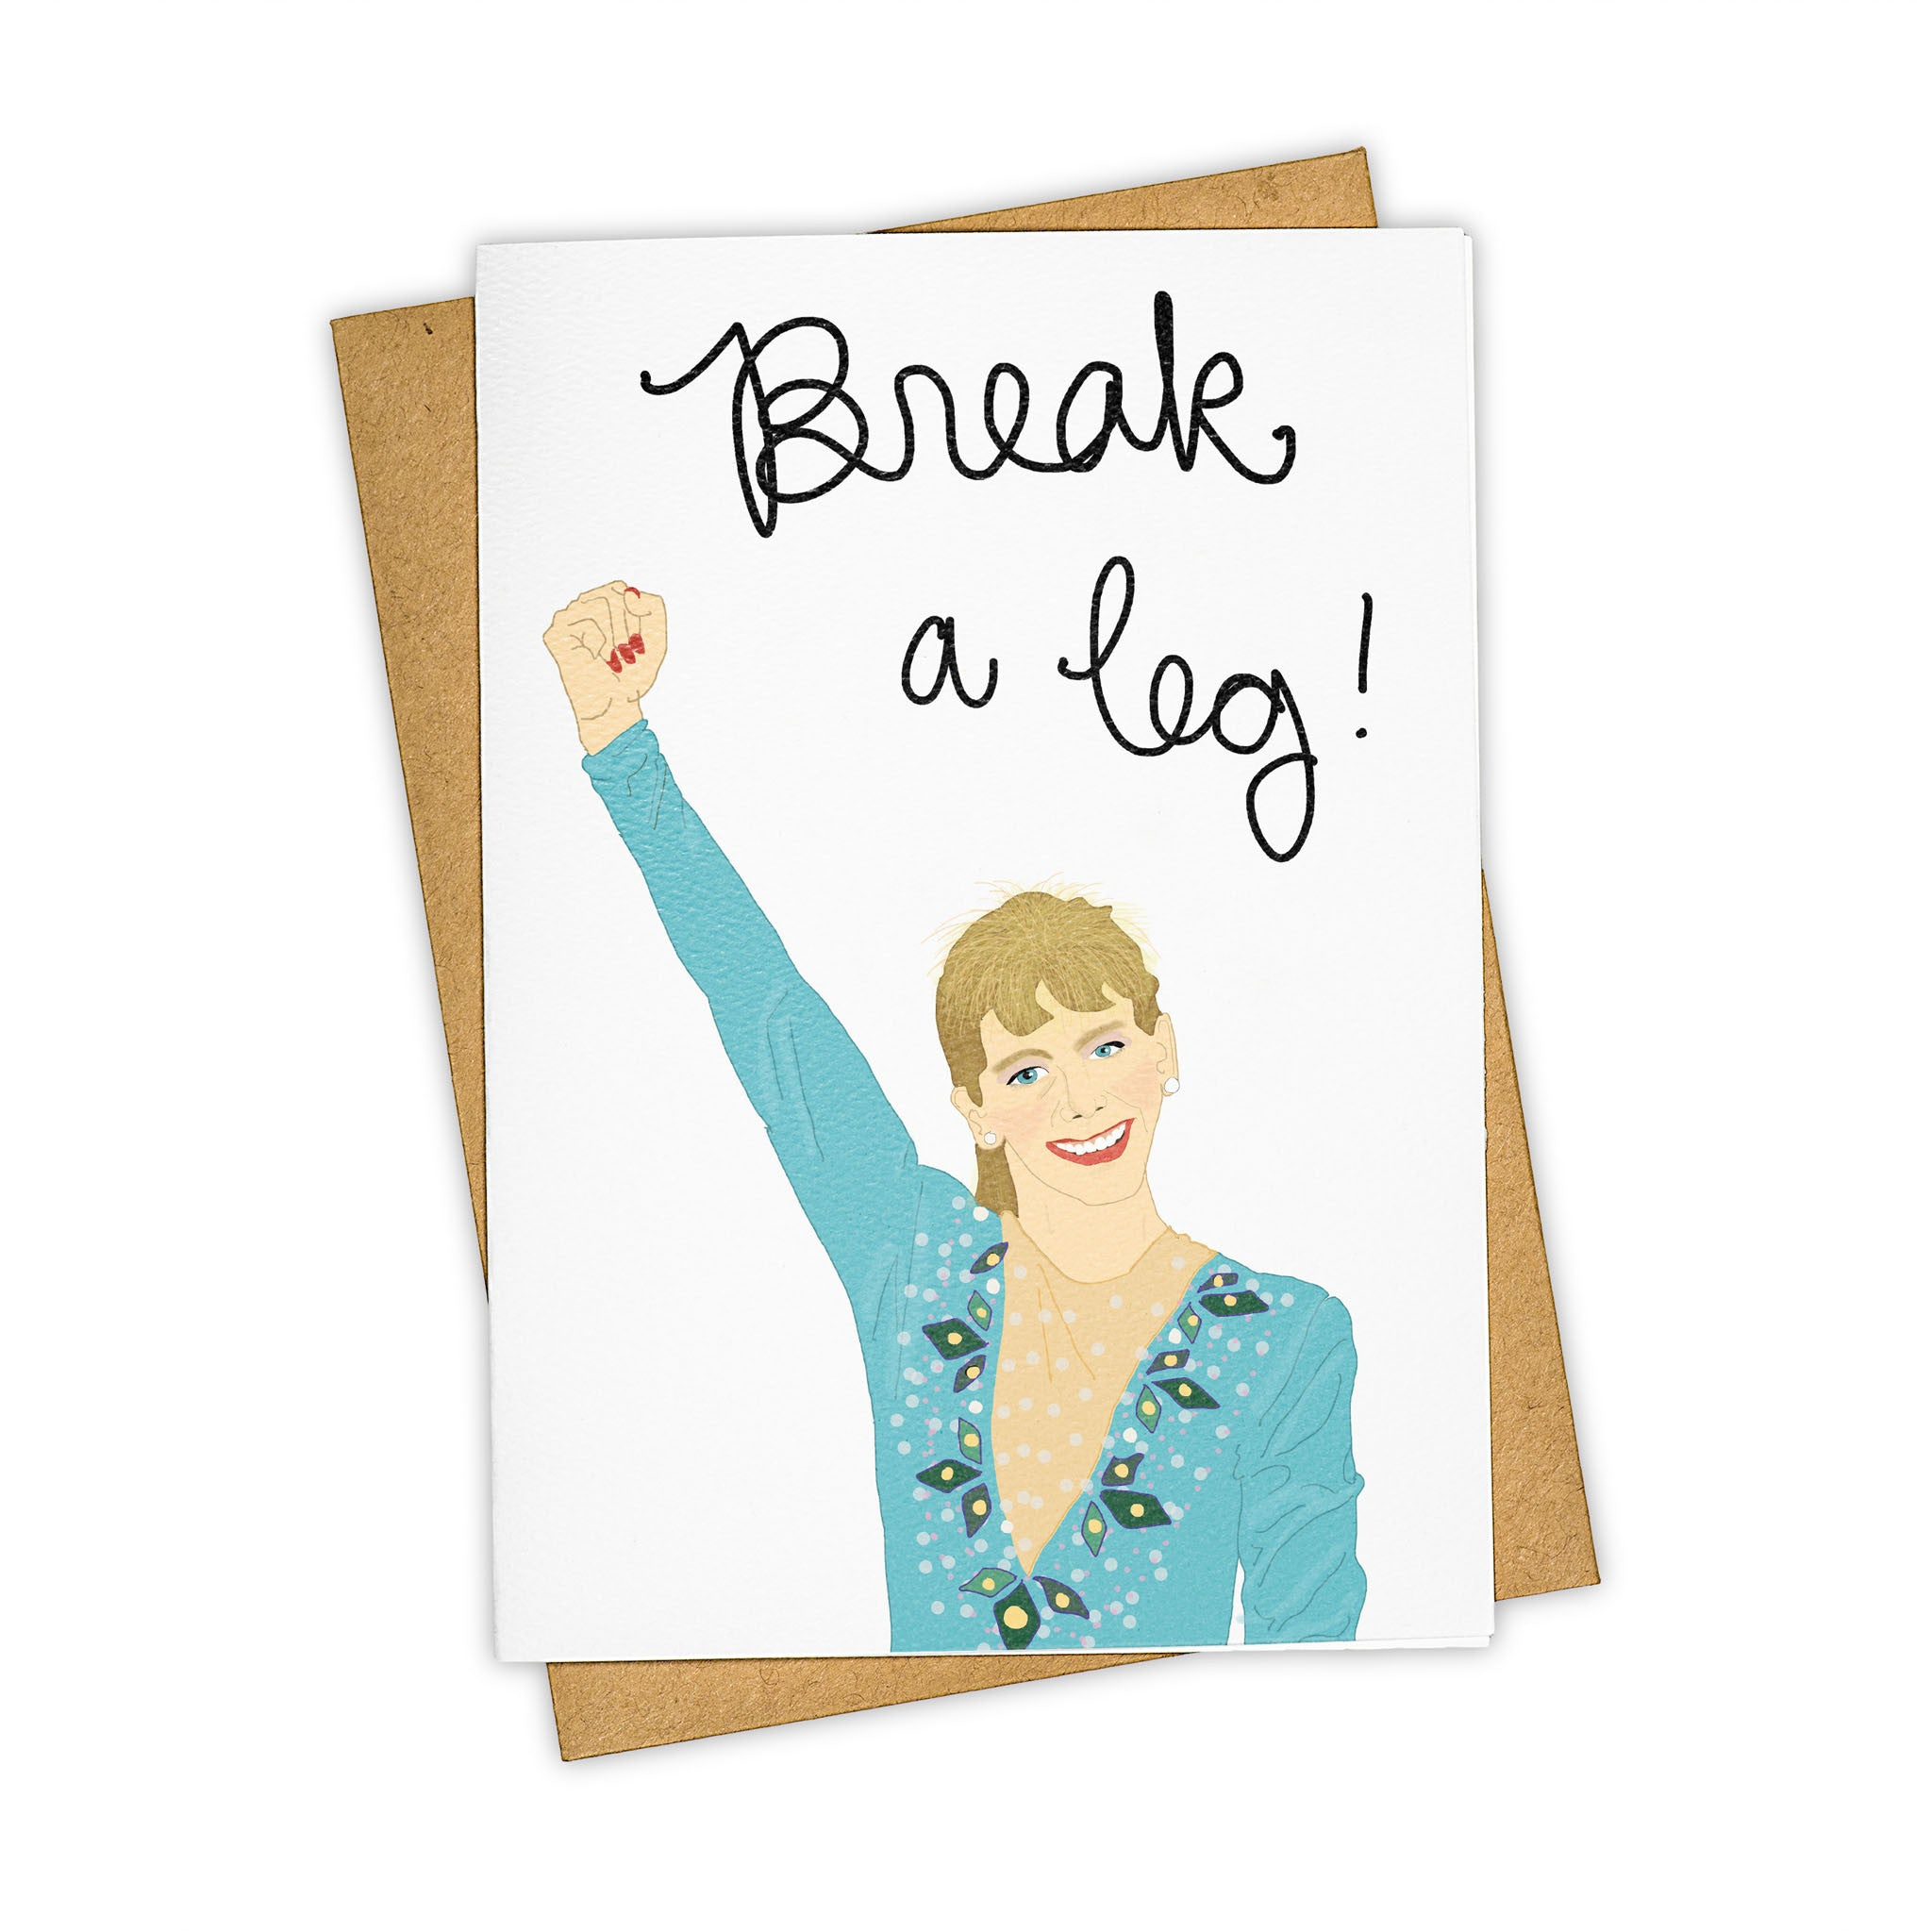 TAY HAM Tonya Harding Break A Leg Olympics Greeting Card